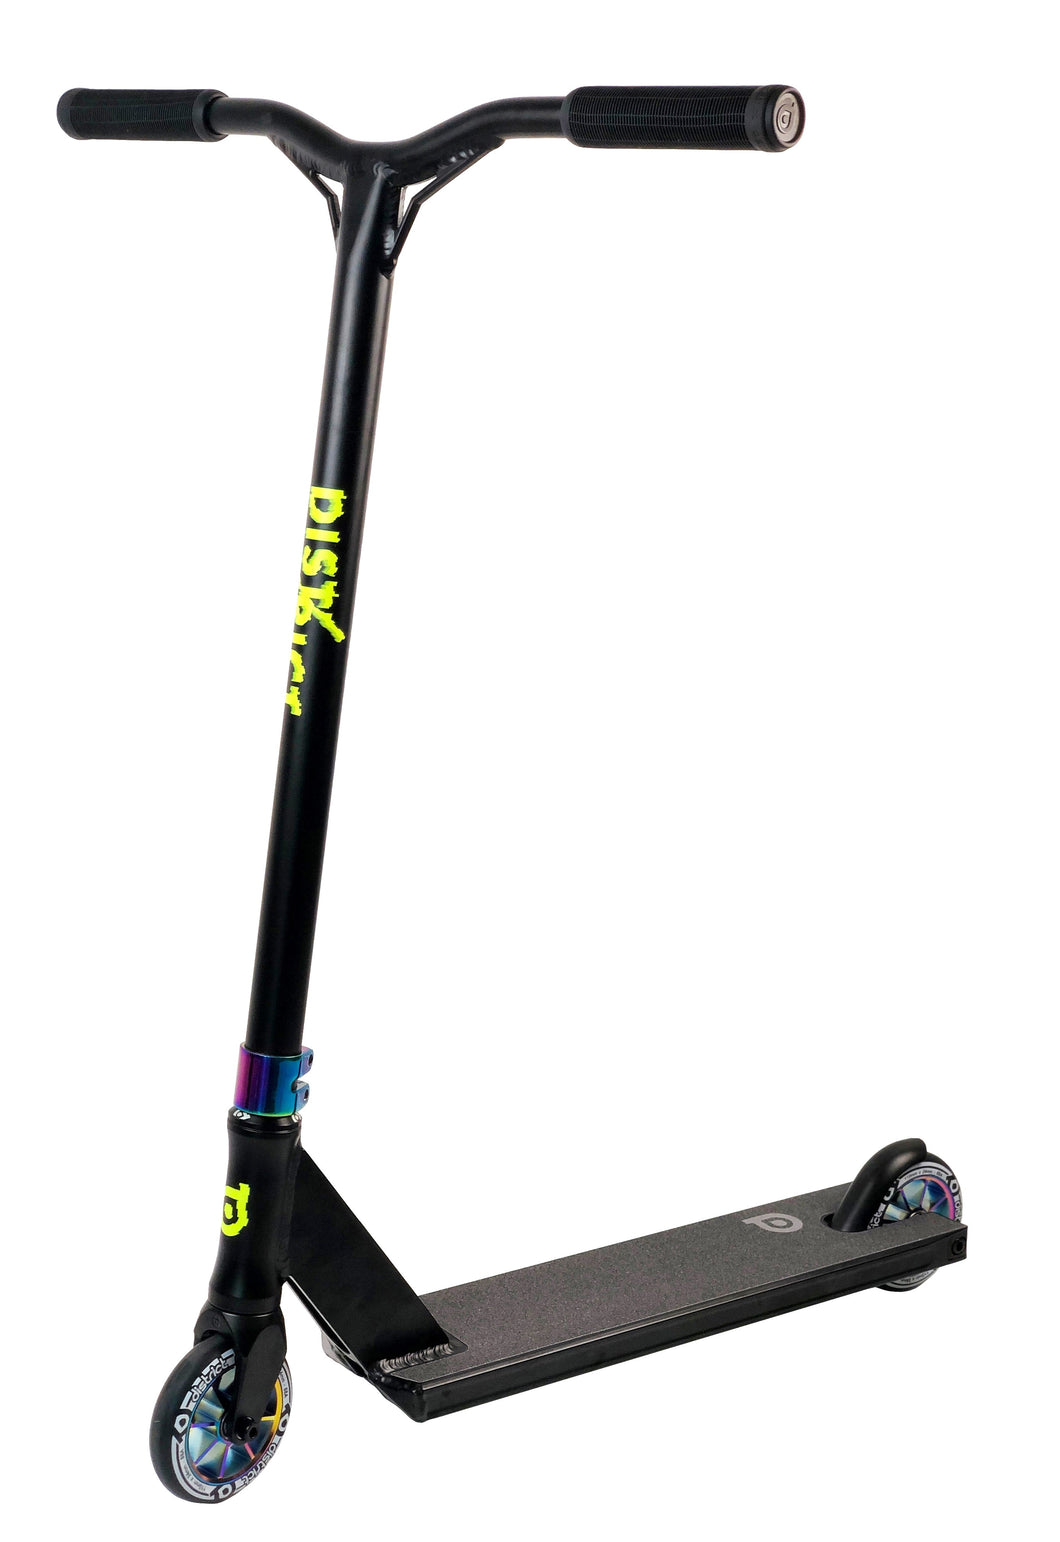 District C50 Complete Scooter Limited Edition - Neo Yellow - Prime Delux Store